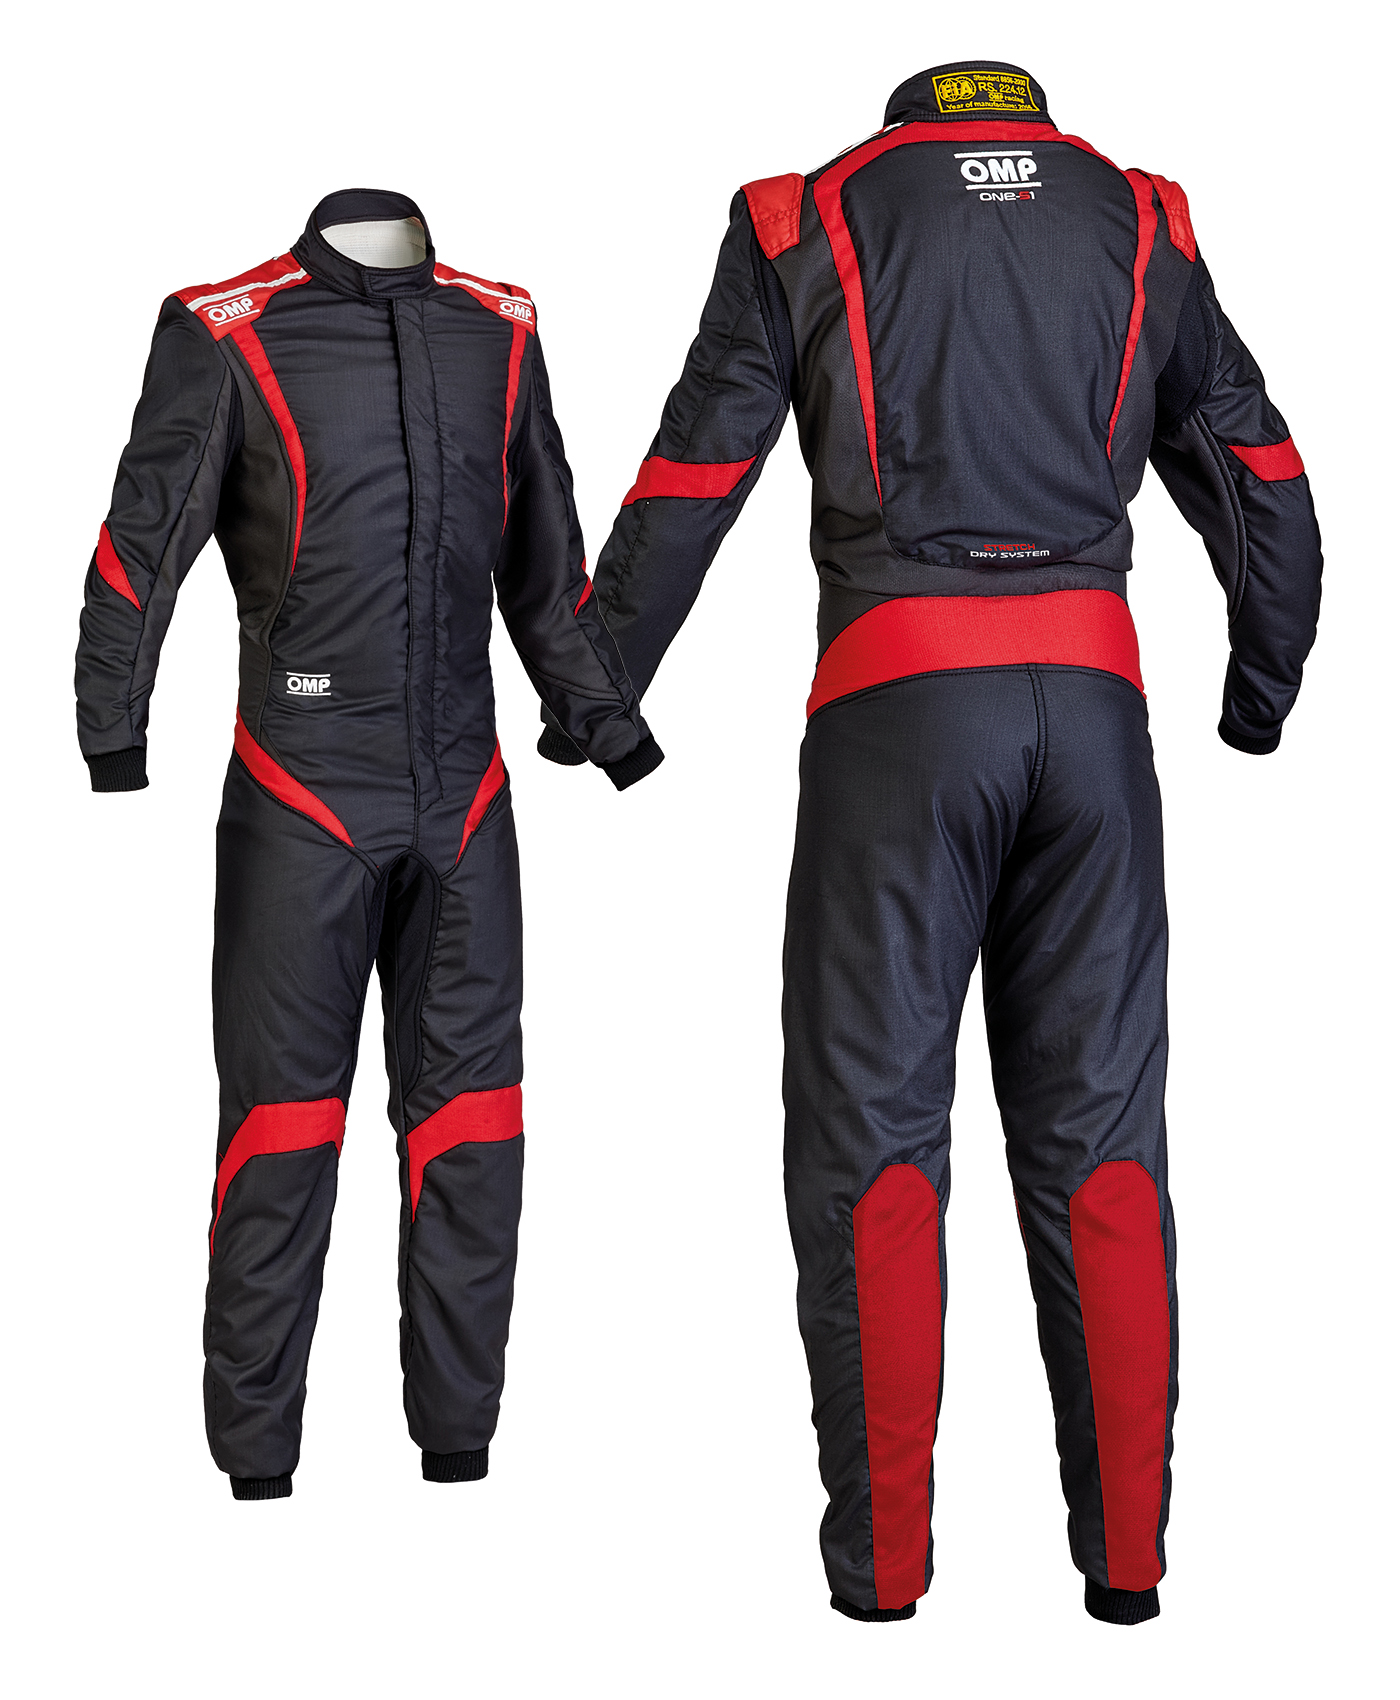 Racing Fire Suits >> OMP One S1 Race Suit | OMP IA01852073 Racing Overalls | OMP One S1 Fireproof Overalls ...